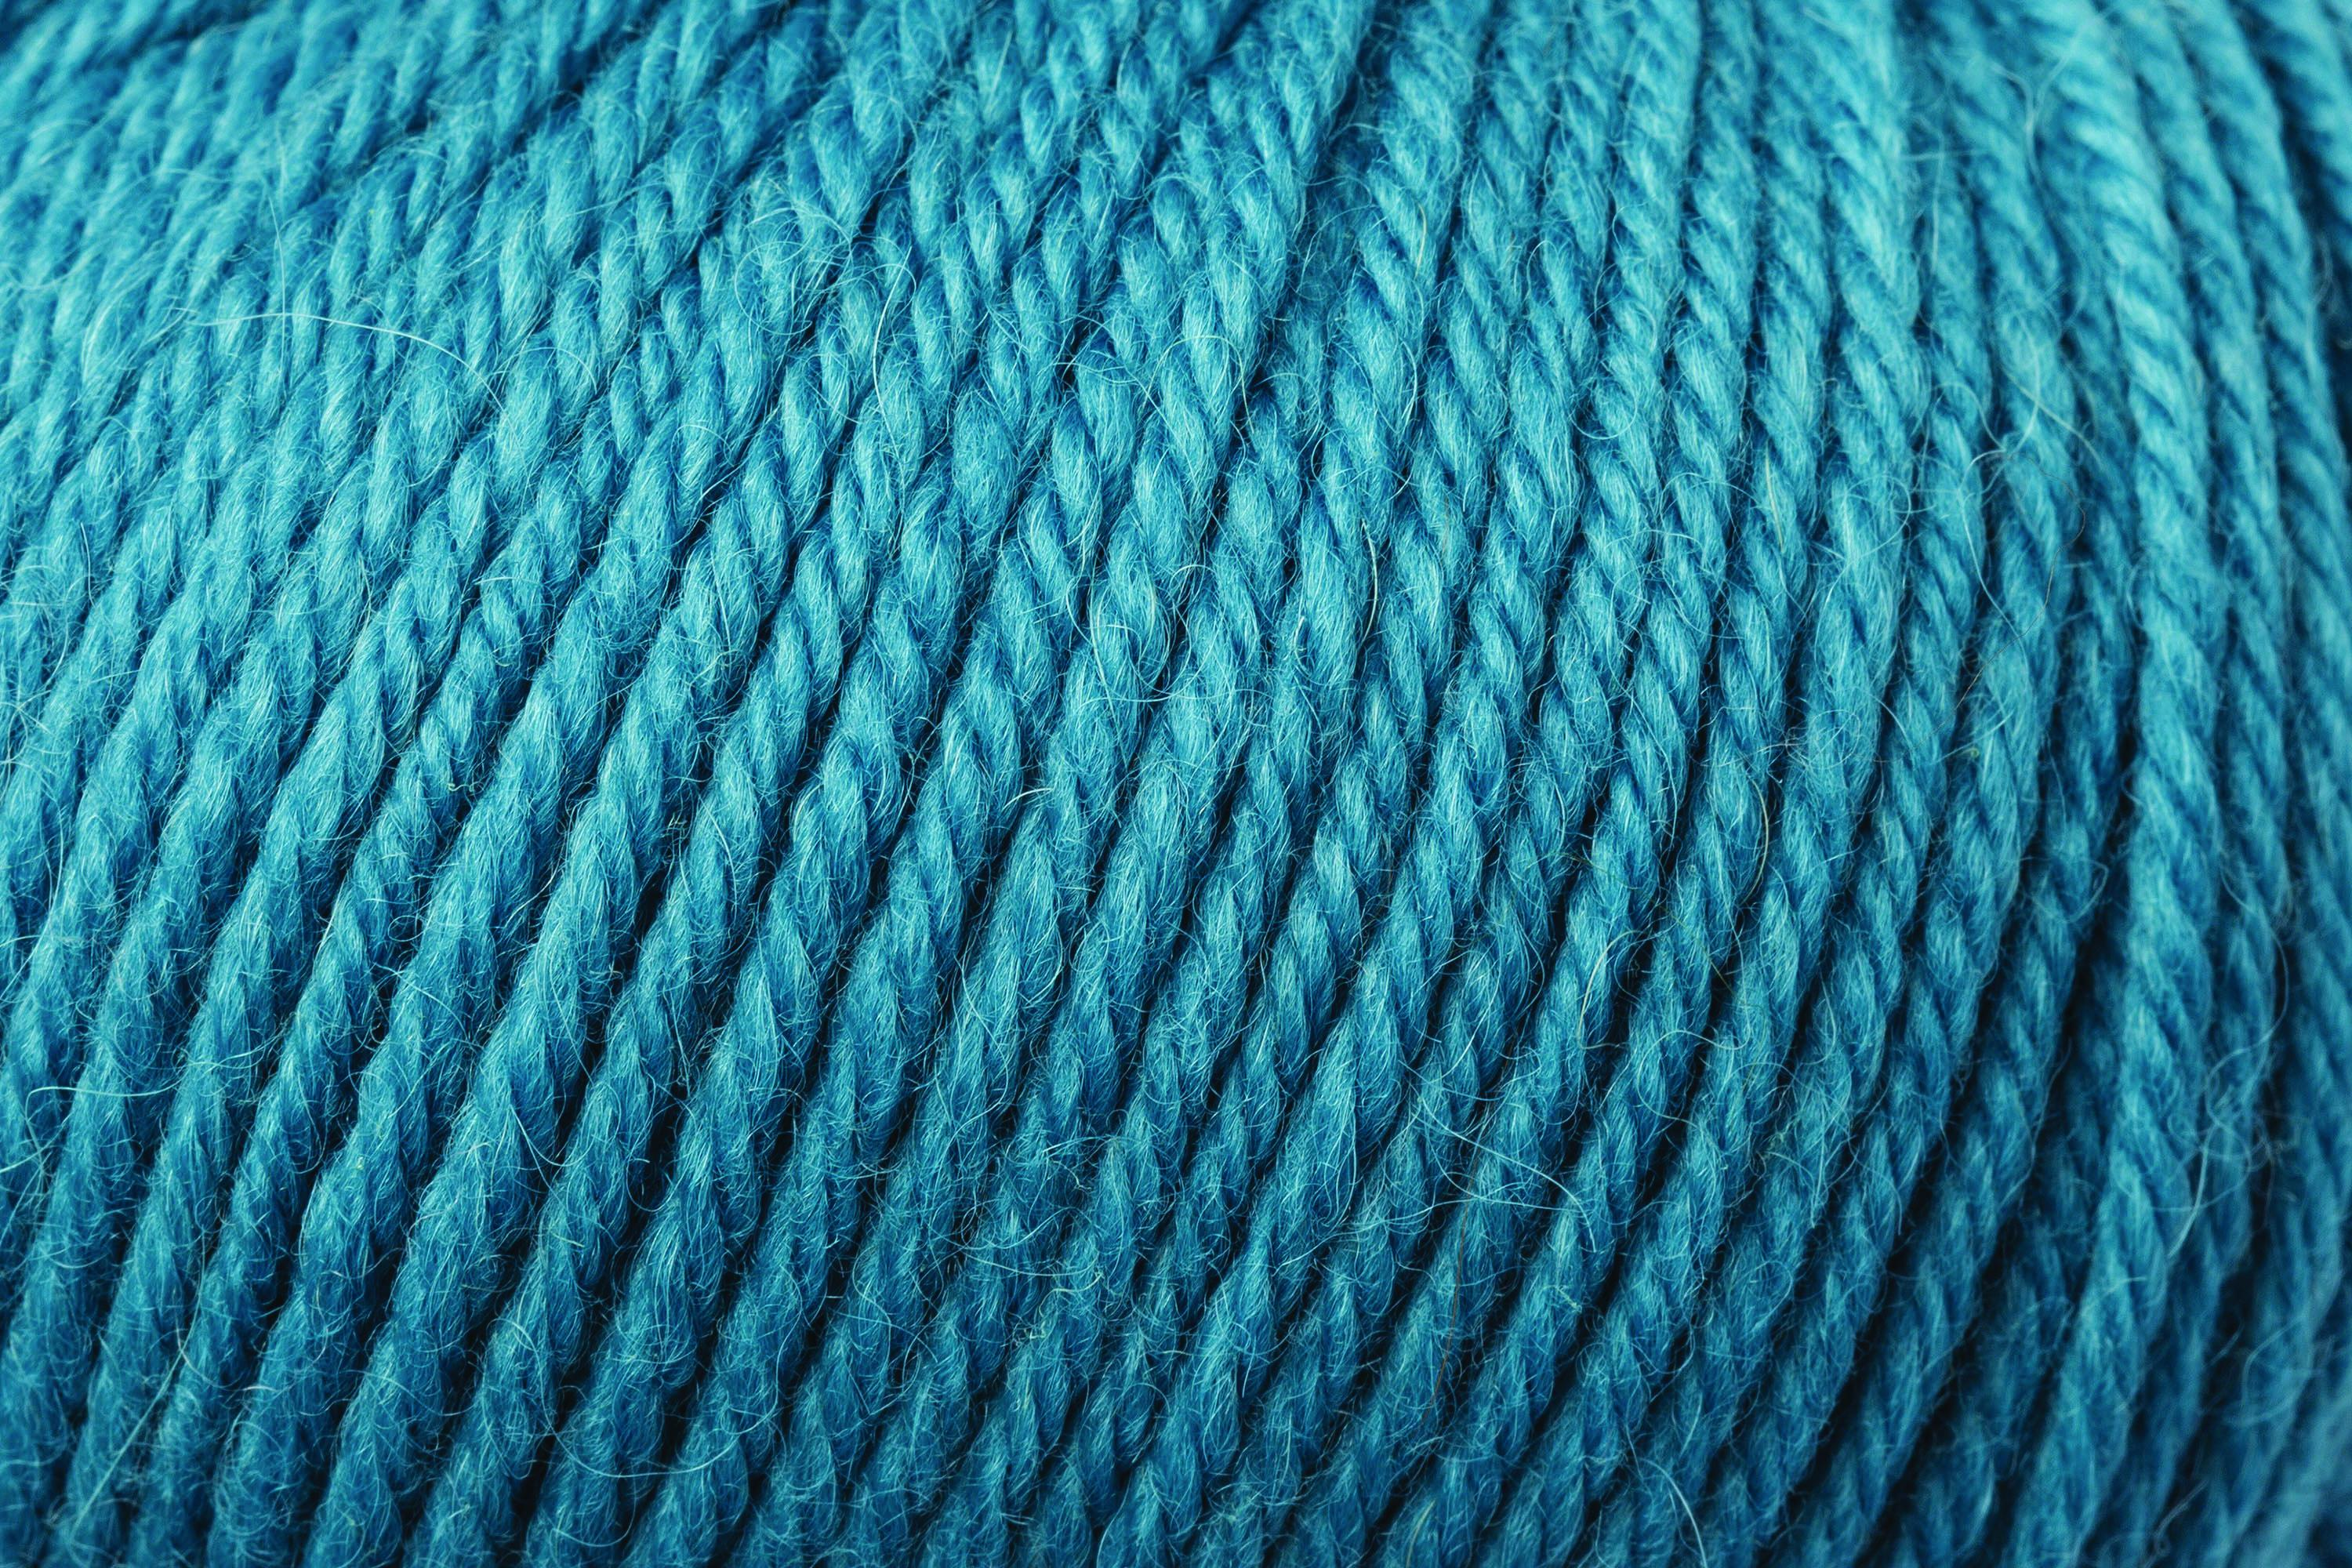 Close up image of yarn Rowan Alpaca Soft DK shade Naples Blue, gentle blue with hint of turquoise